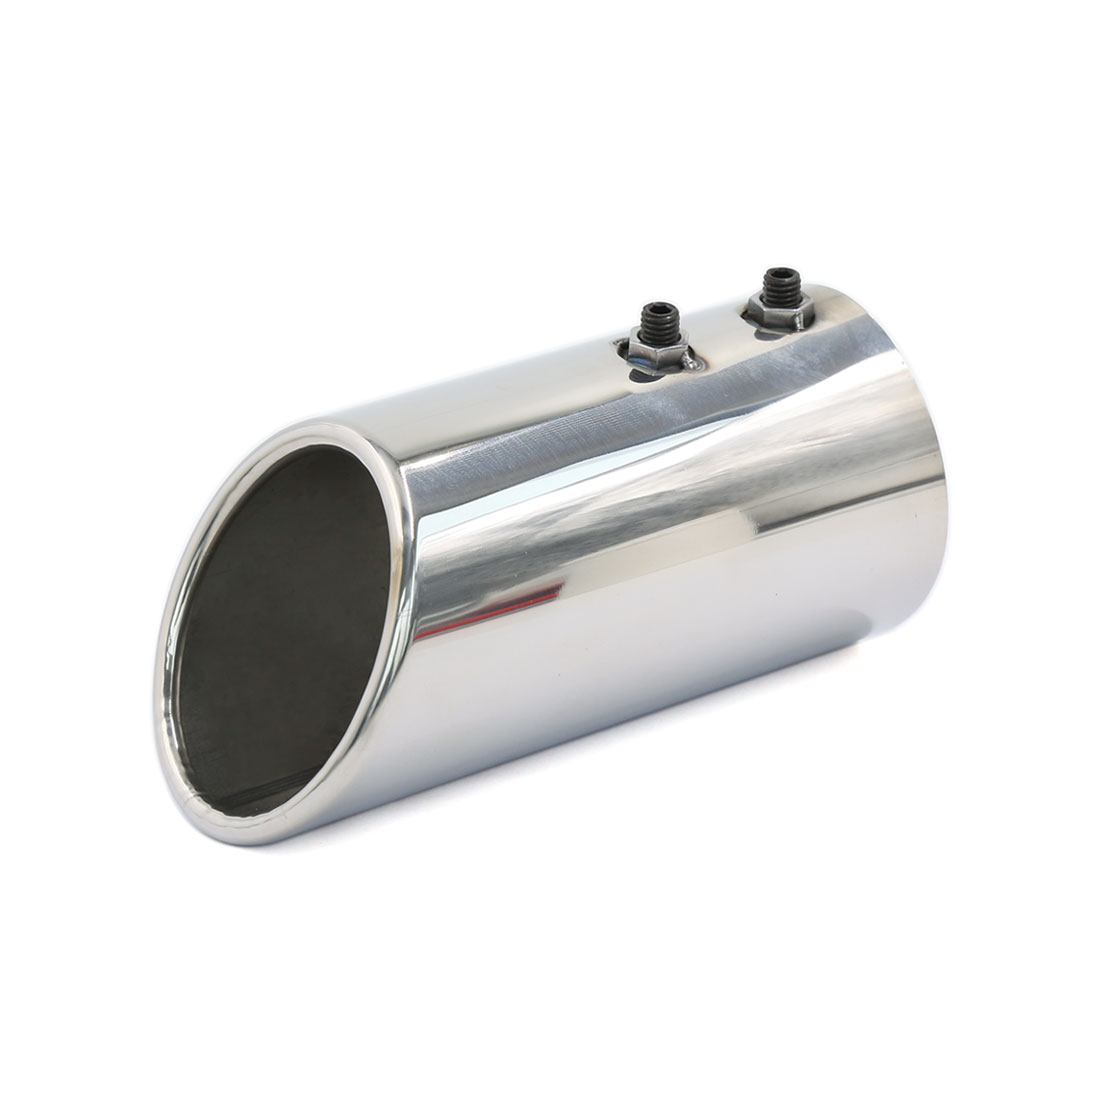 Universal 74mm Inlet Stainless Steel Exhaust Muffler Silencer for Car Vehicle